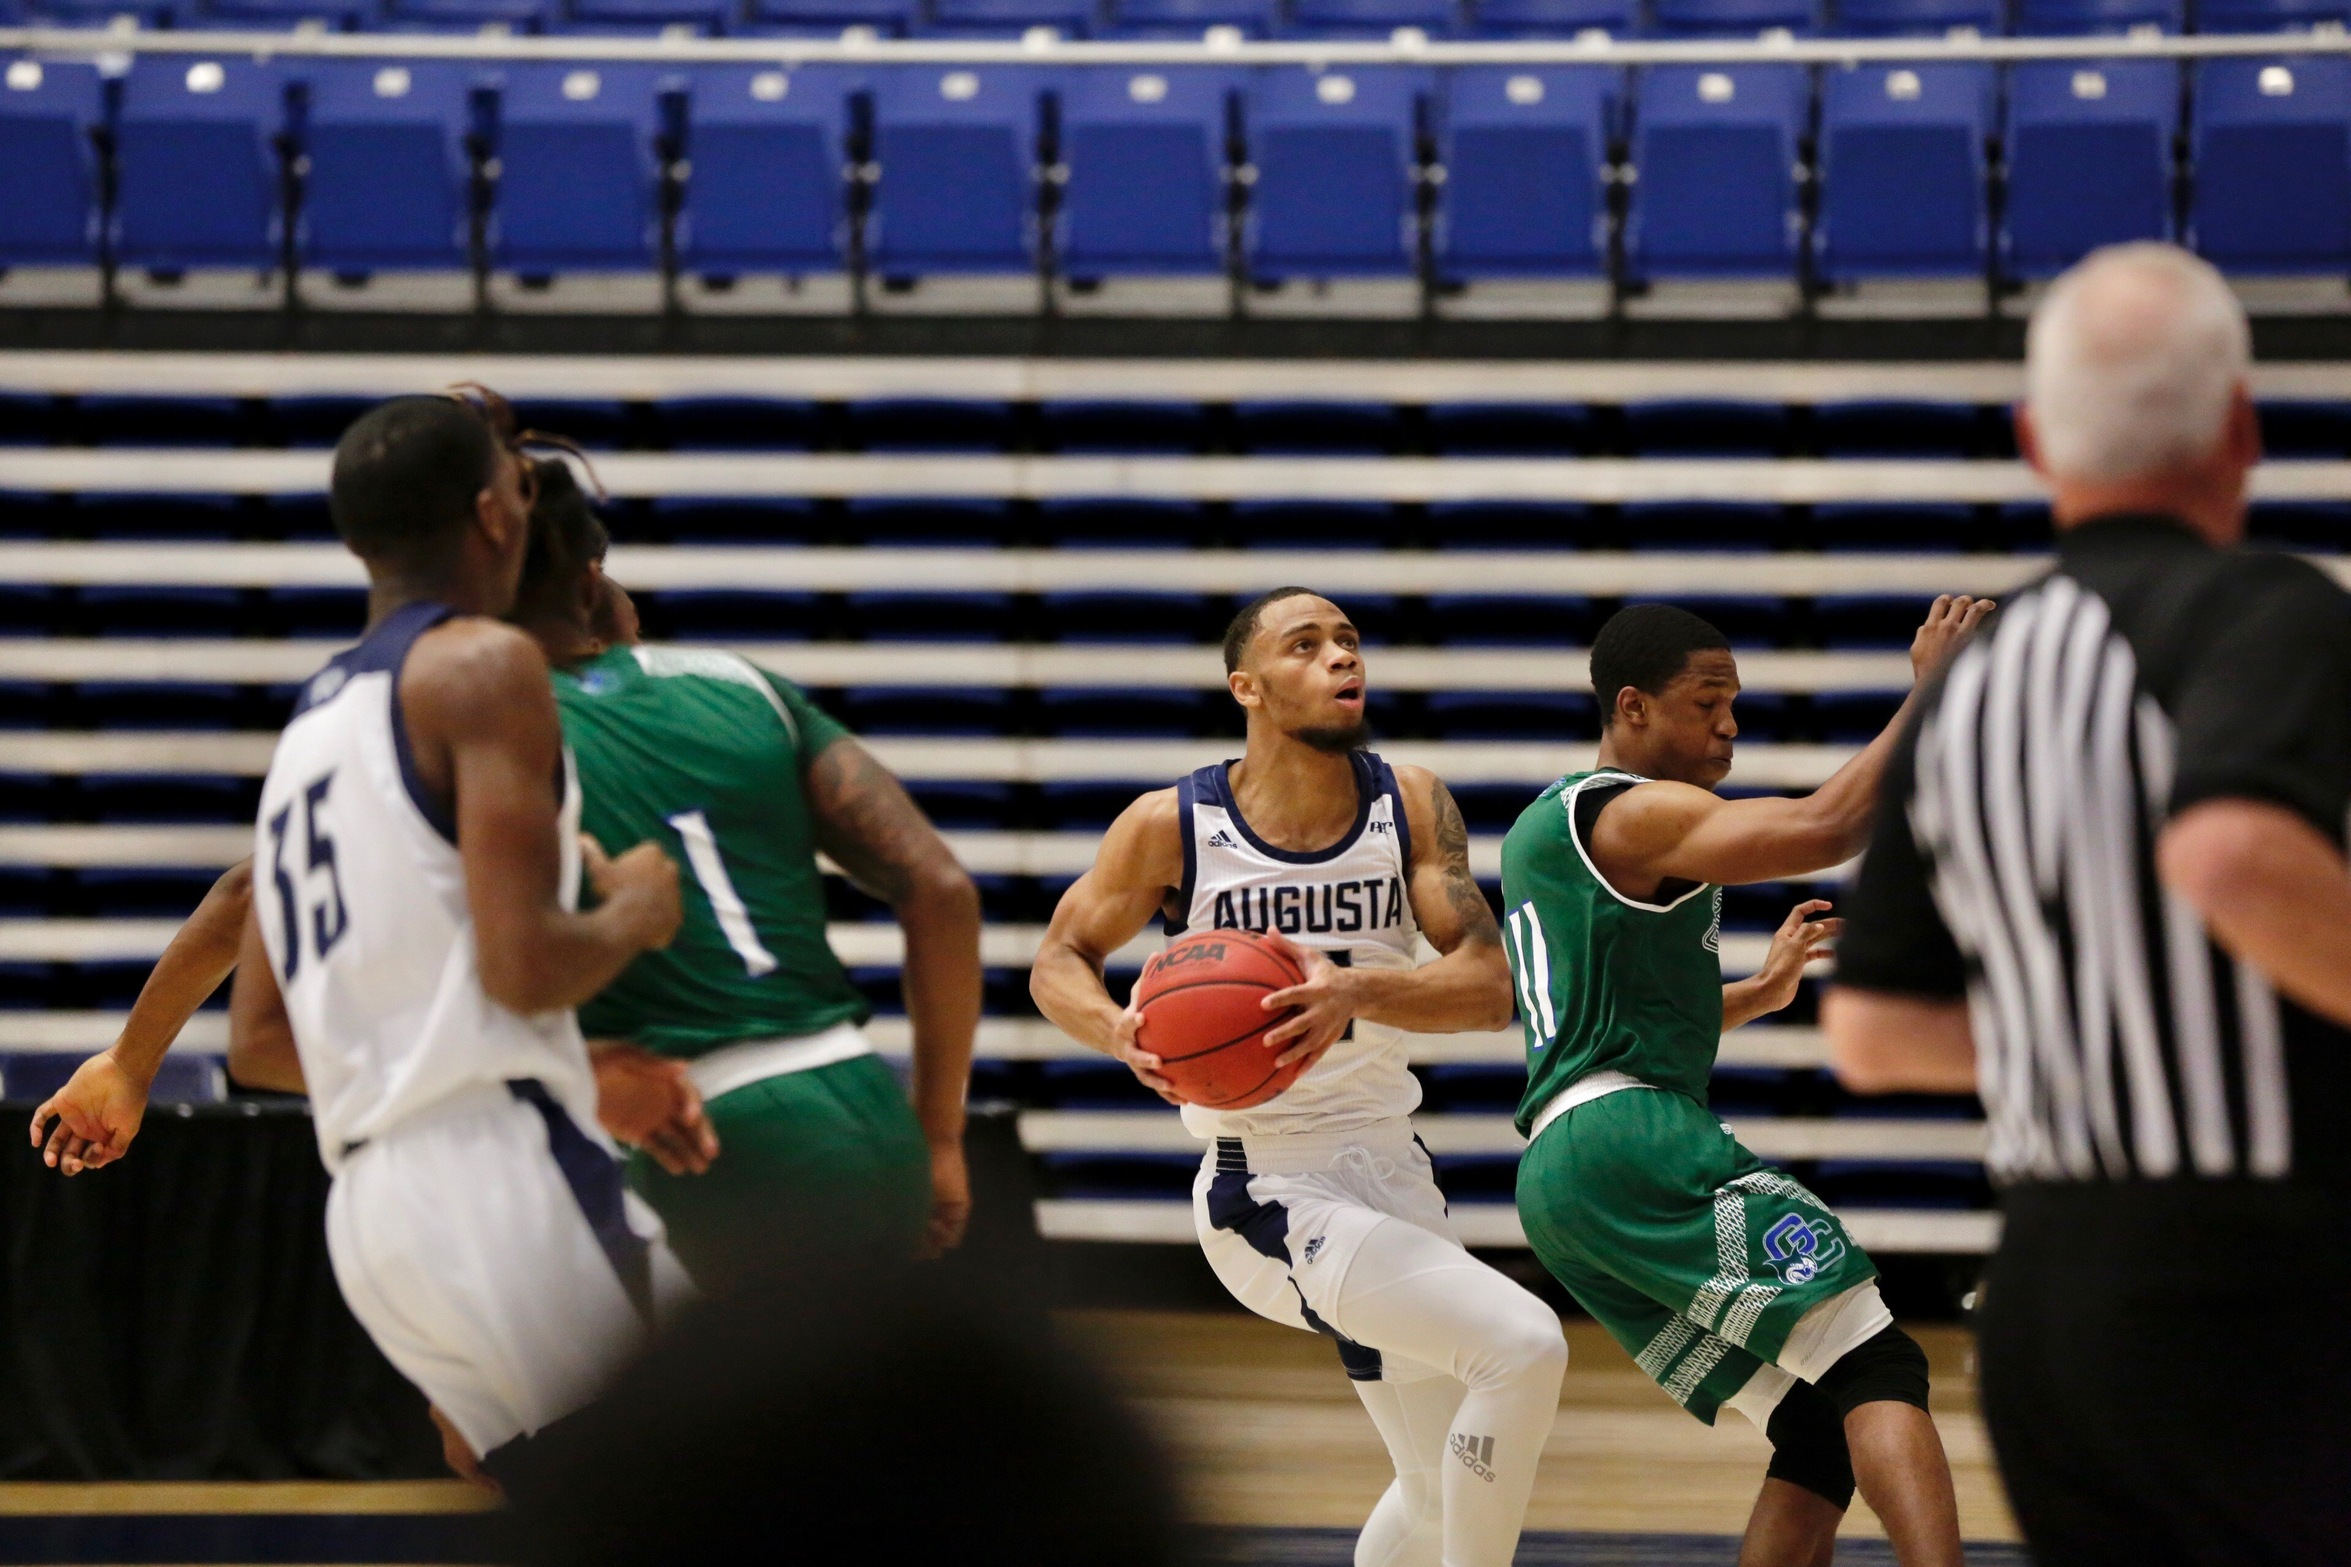 Darren Lucas-White Leads Shorthanded Augusta Team to Victory Over Georgia College